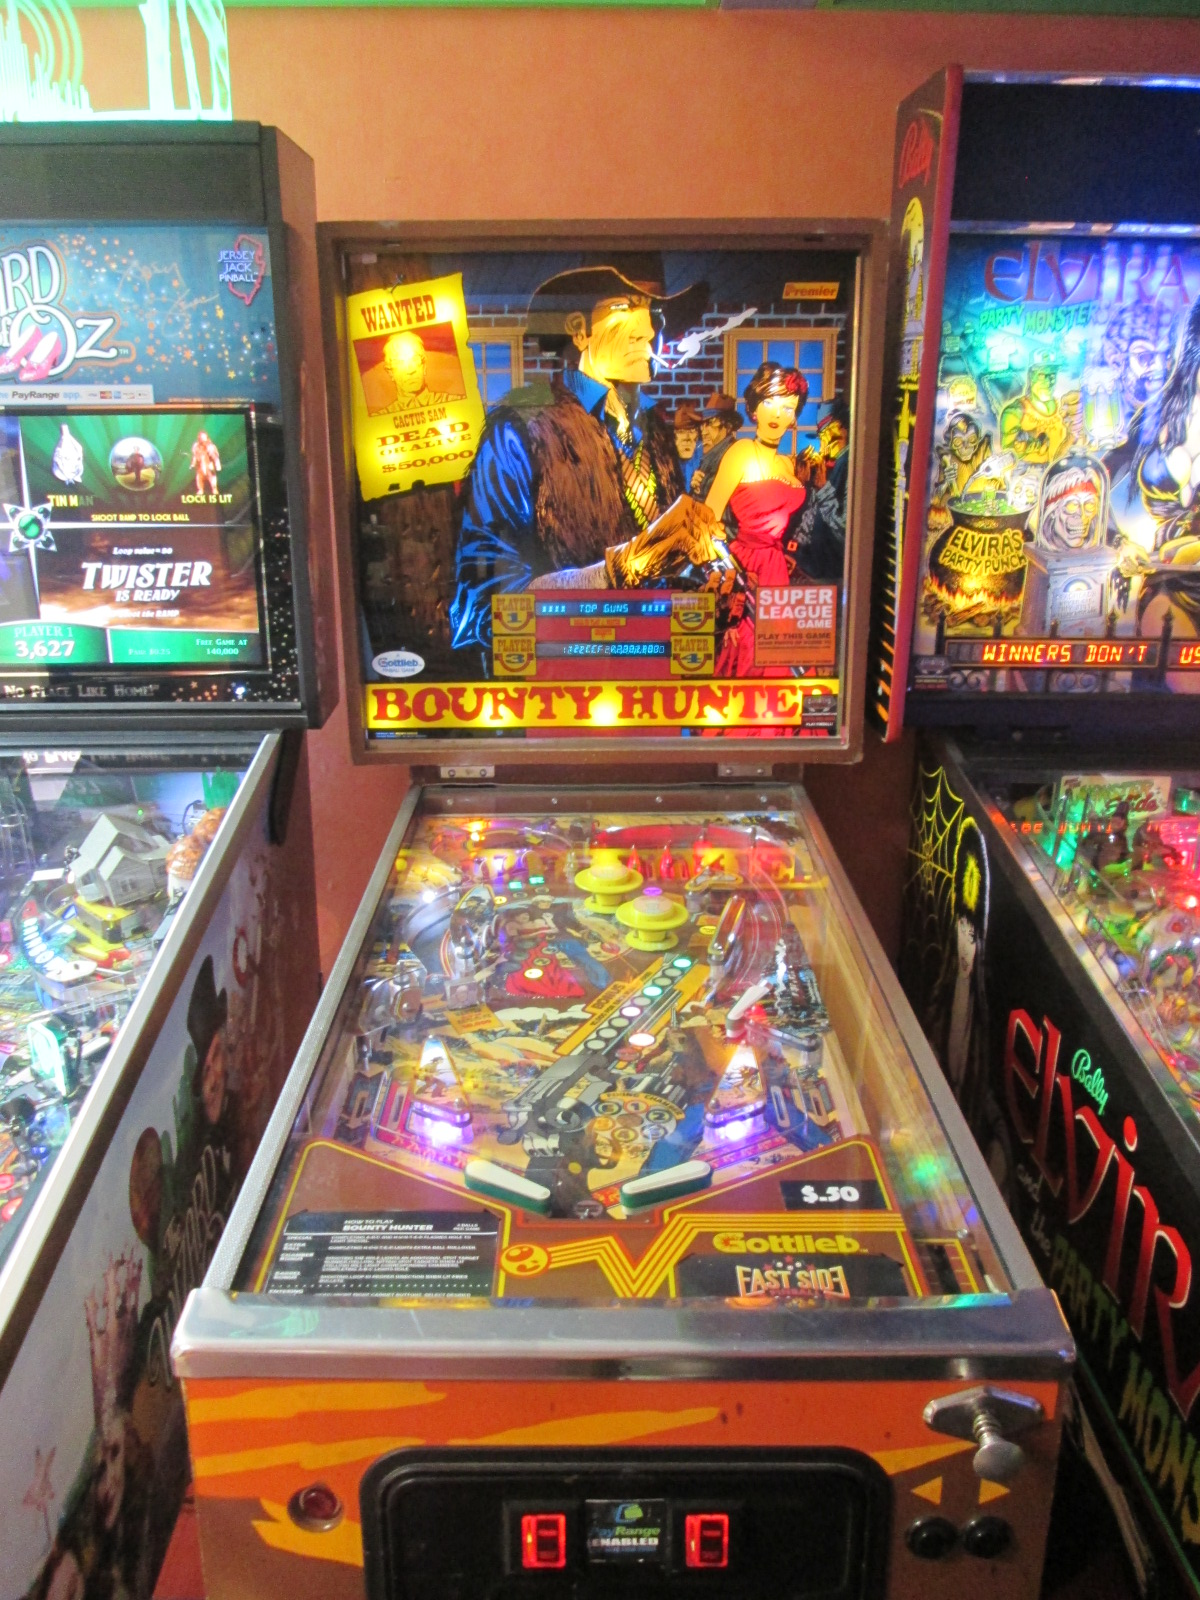 ed1475: Bounty Hunter (Pinball: 3 Balls) 949,530 points on 2016-09-18 15:15:35